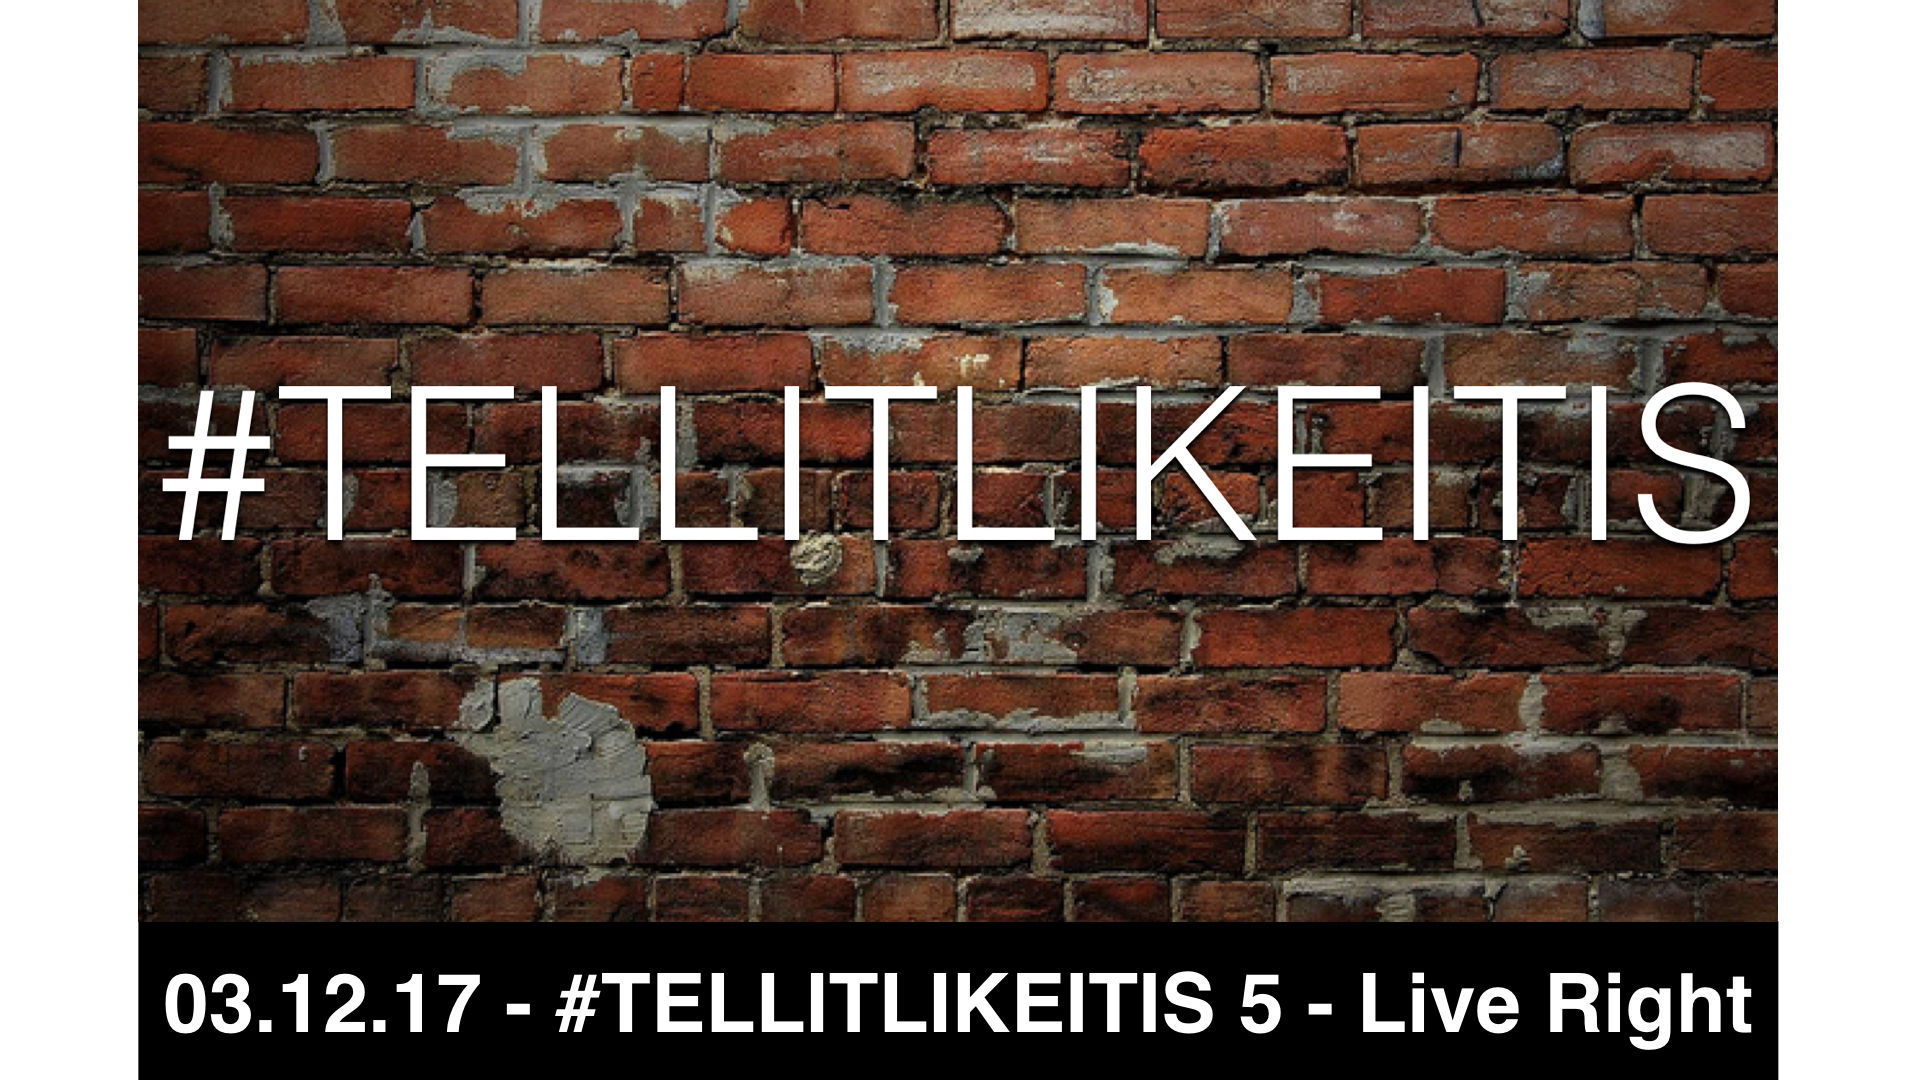 03.12.17 - #TELLITLIKEITIS 5 - Live Right